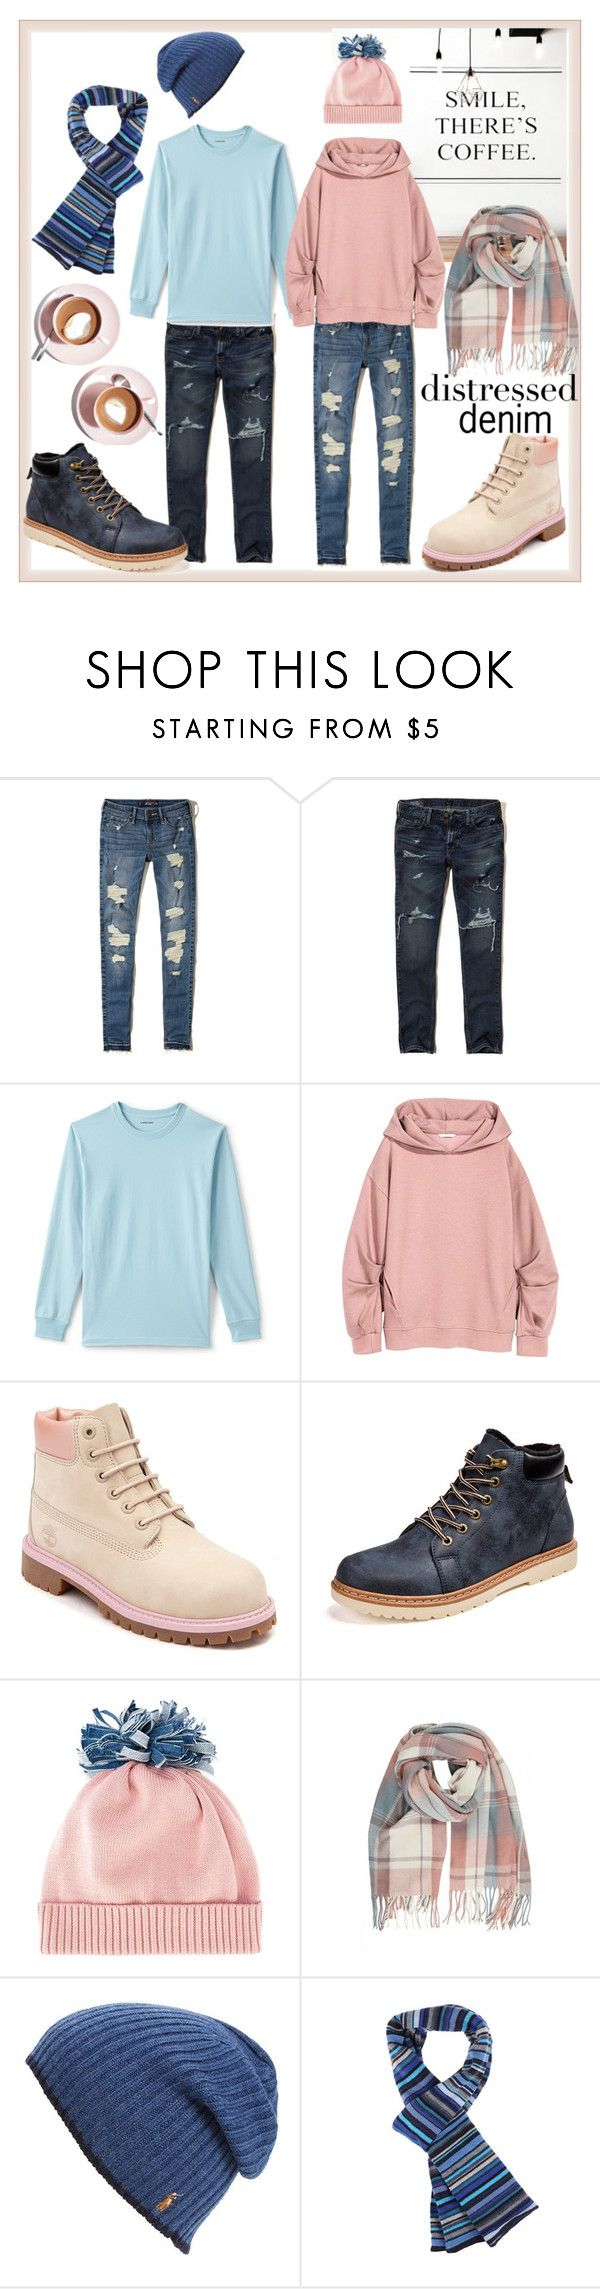 """""""coffee with him"""" by kc-spangler ❤ liked on Polyvore featuring Hollister Co., Lands' End, Timberland, Federica Moretti, Polo Ralph Lauren, Paul Smith and Martha Stewart"""